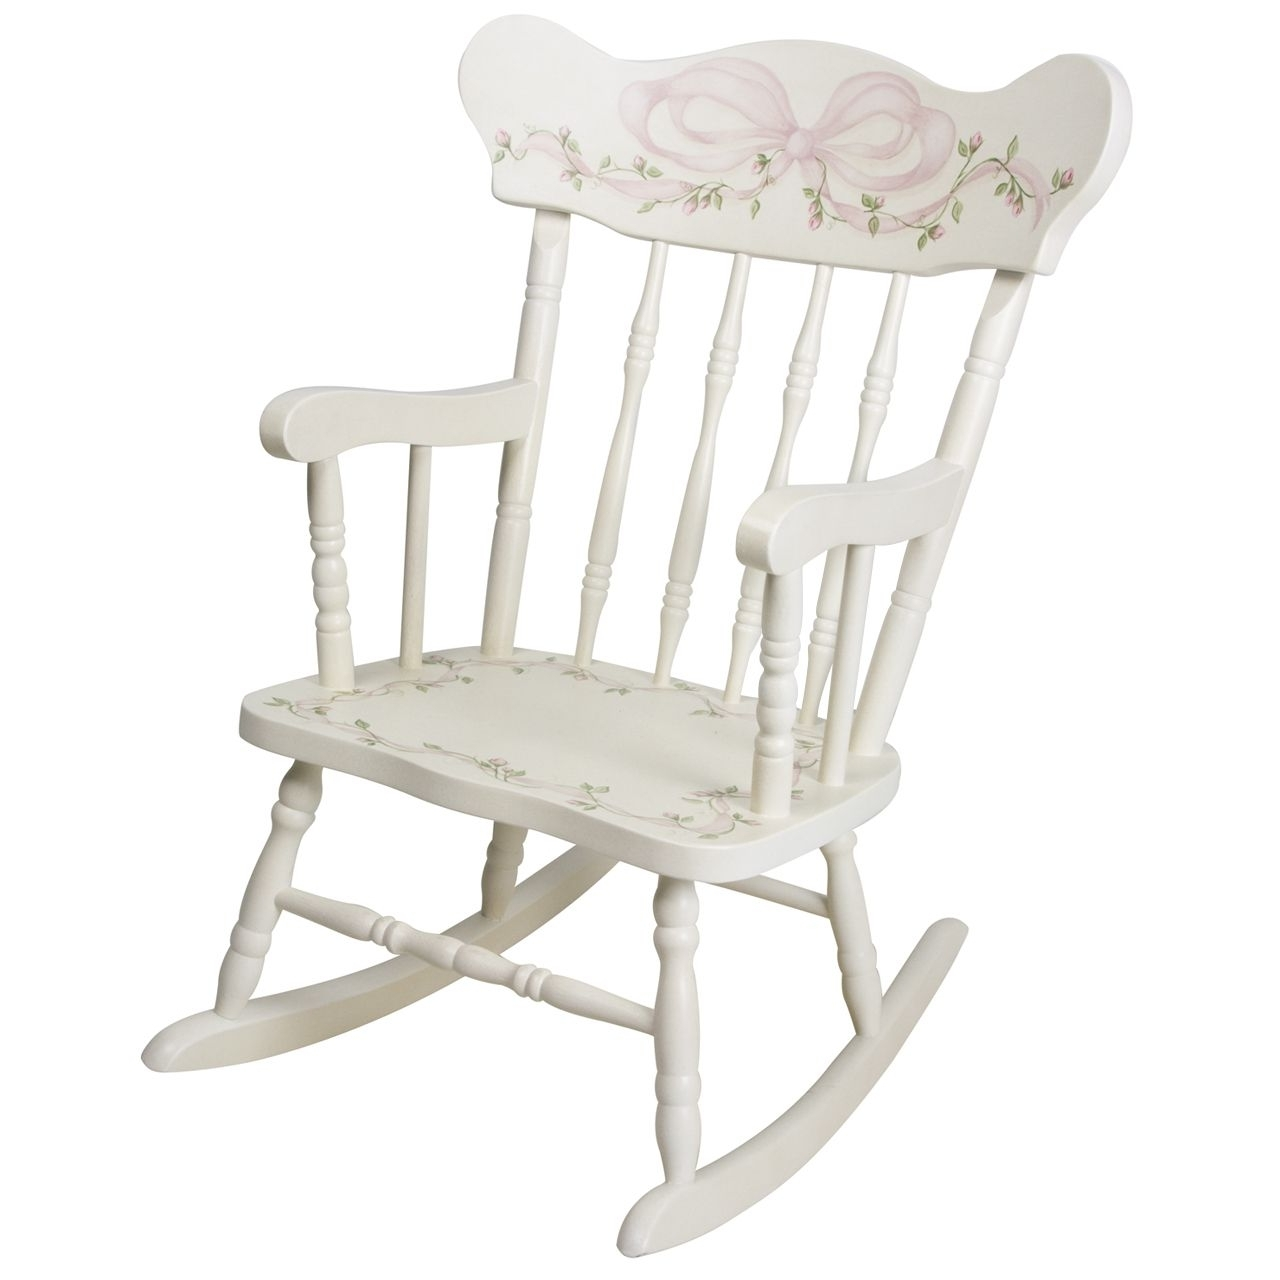 Popular Rocking Chairs At Roses For Afk Furniture – Child's Rocking Chair Ribbons And Roses, $ (View 12 of 20)